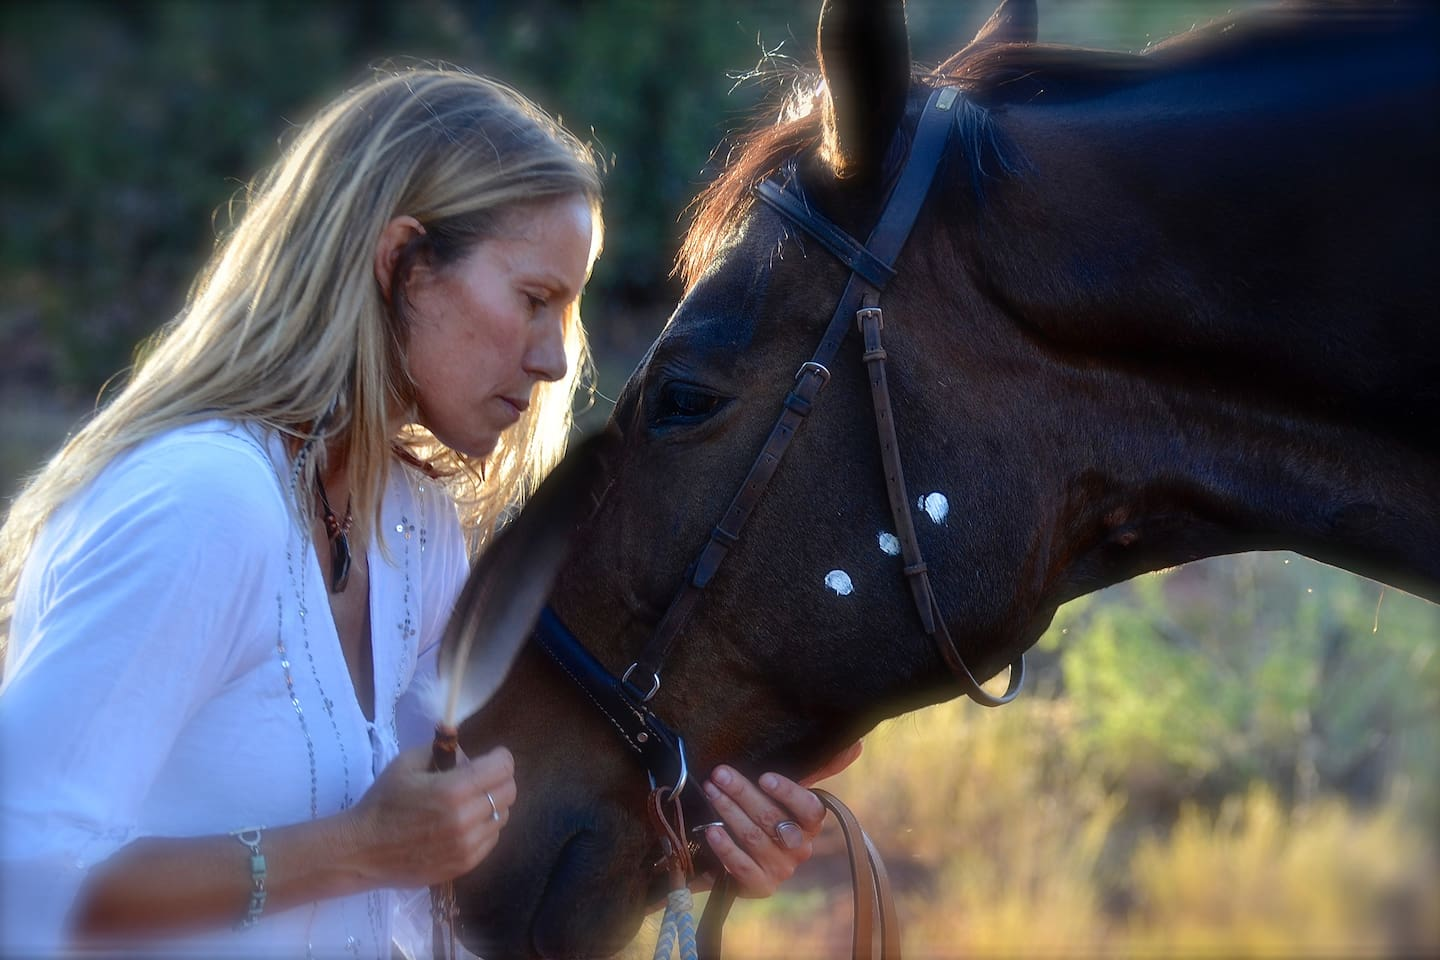 Horse Medicine, Meditation, ceremony, sound healing, hiking, private jeep journeys, horse riding and a cozy apartment with a view of Sedona's magnificent high mountain forestry and more....a truly special Sedona experience...see why we are the most frequently visited Airbnb in Sedona for 5 years running!